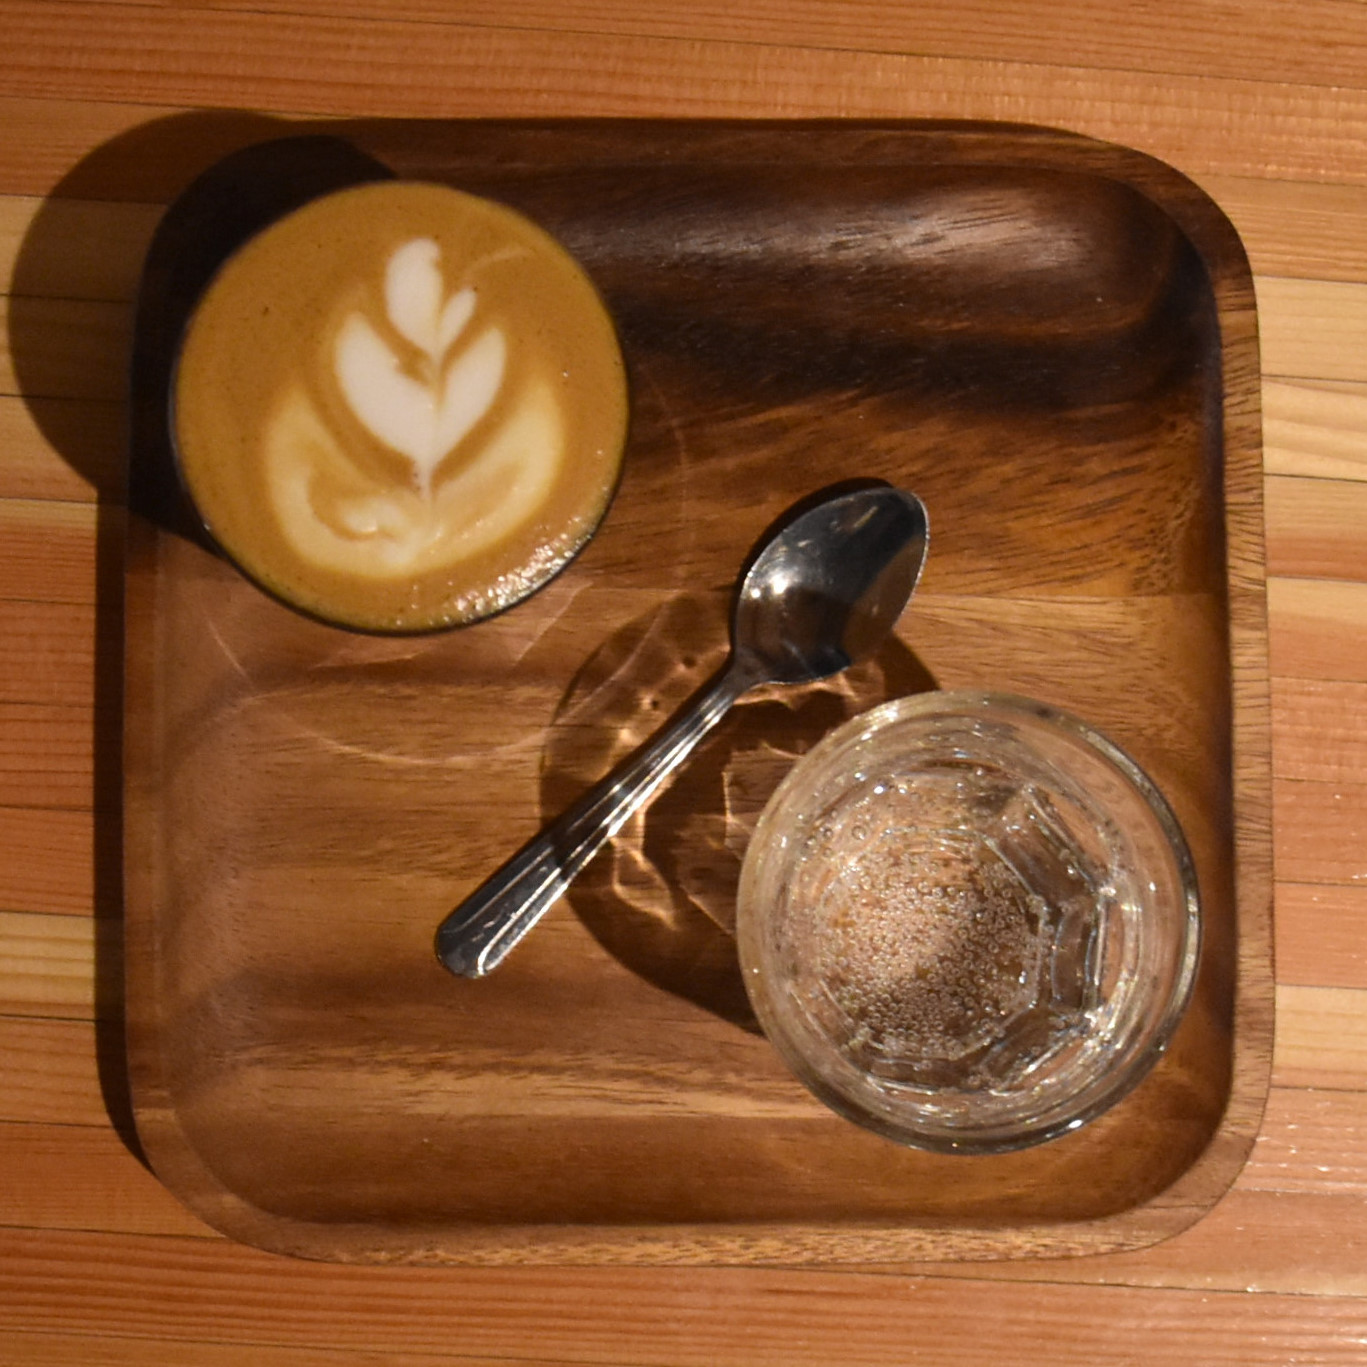 My cortado, made with the La Esperanza Colombian single-origin, roasted on-site and served in a glass, on a wooden tray, with a glass of water at the side.